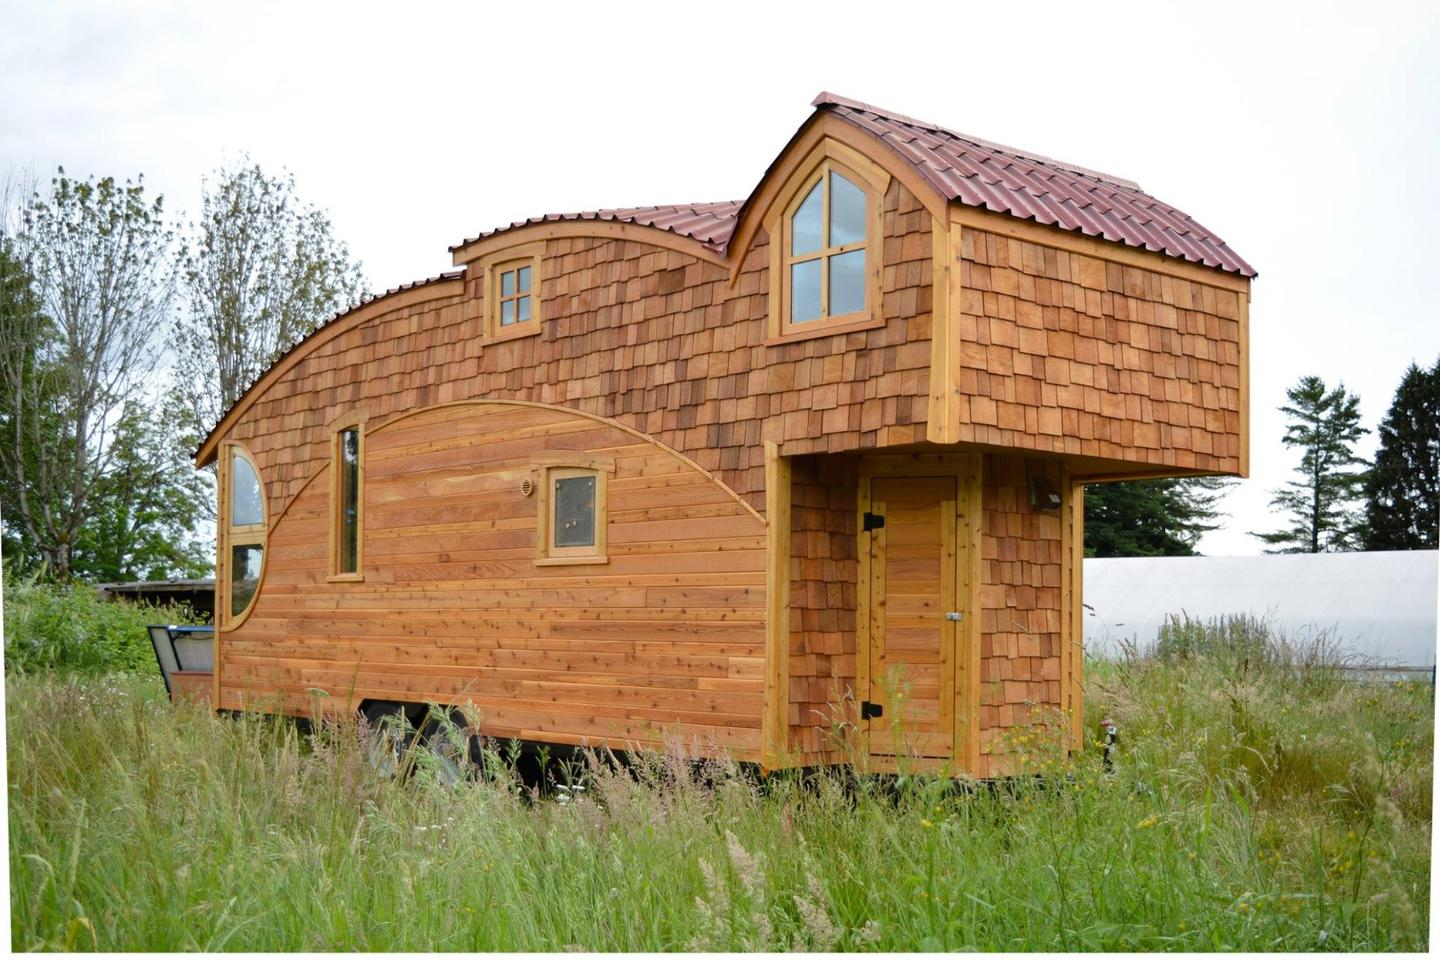 Olympia, Washington-based small living specialists Zyl Vardos recently put the finishing touches to its latest tiny house, the Moon Dragon